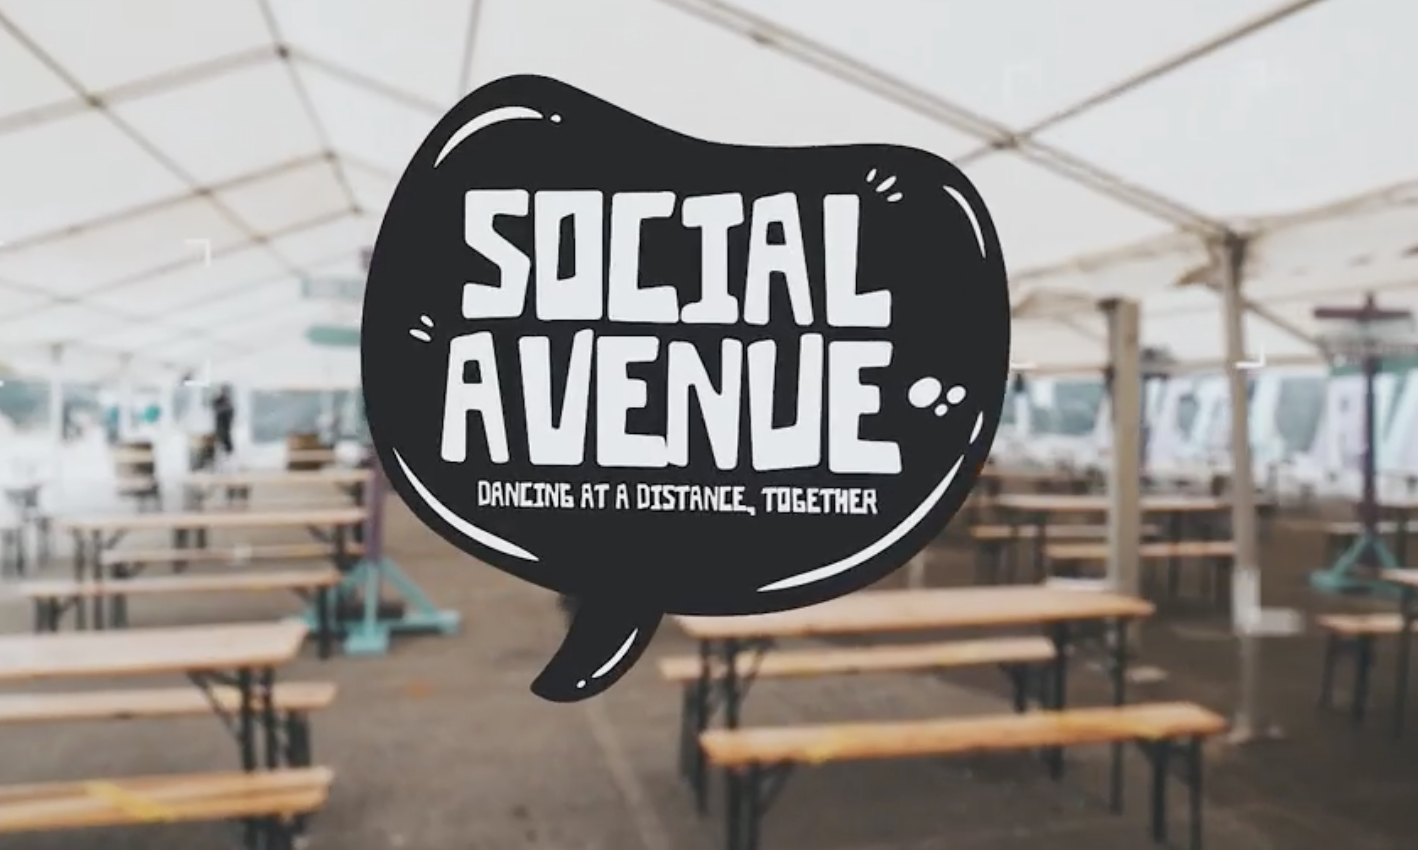 Social Avenue: The Manchester promoters throwing safe parties in a pandemic, The Manc